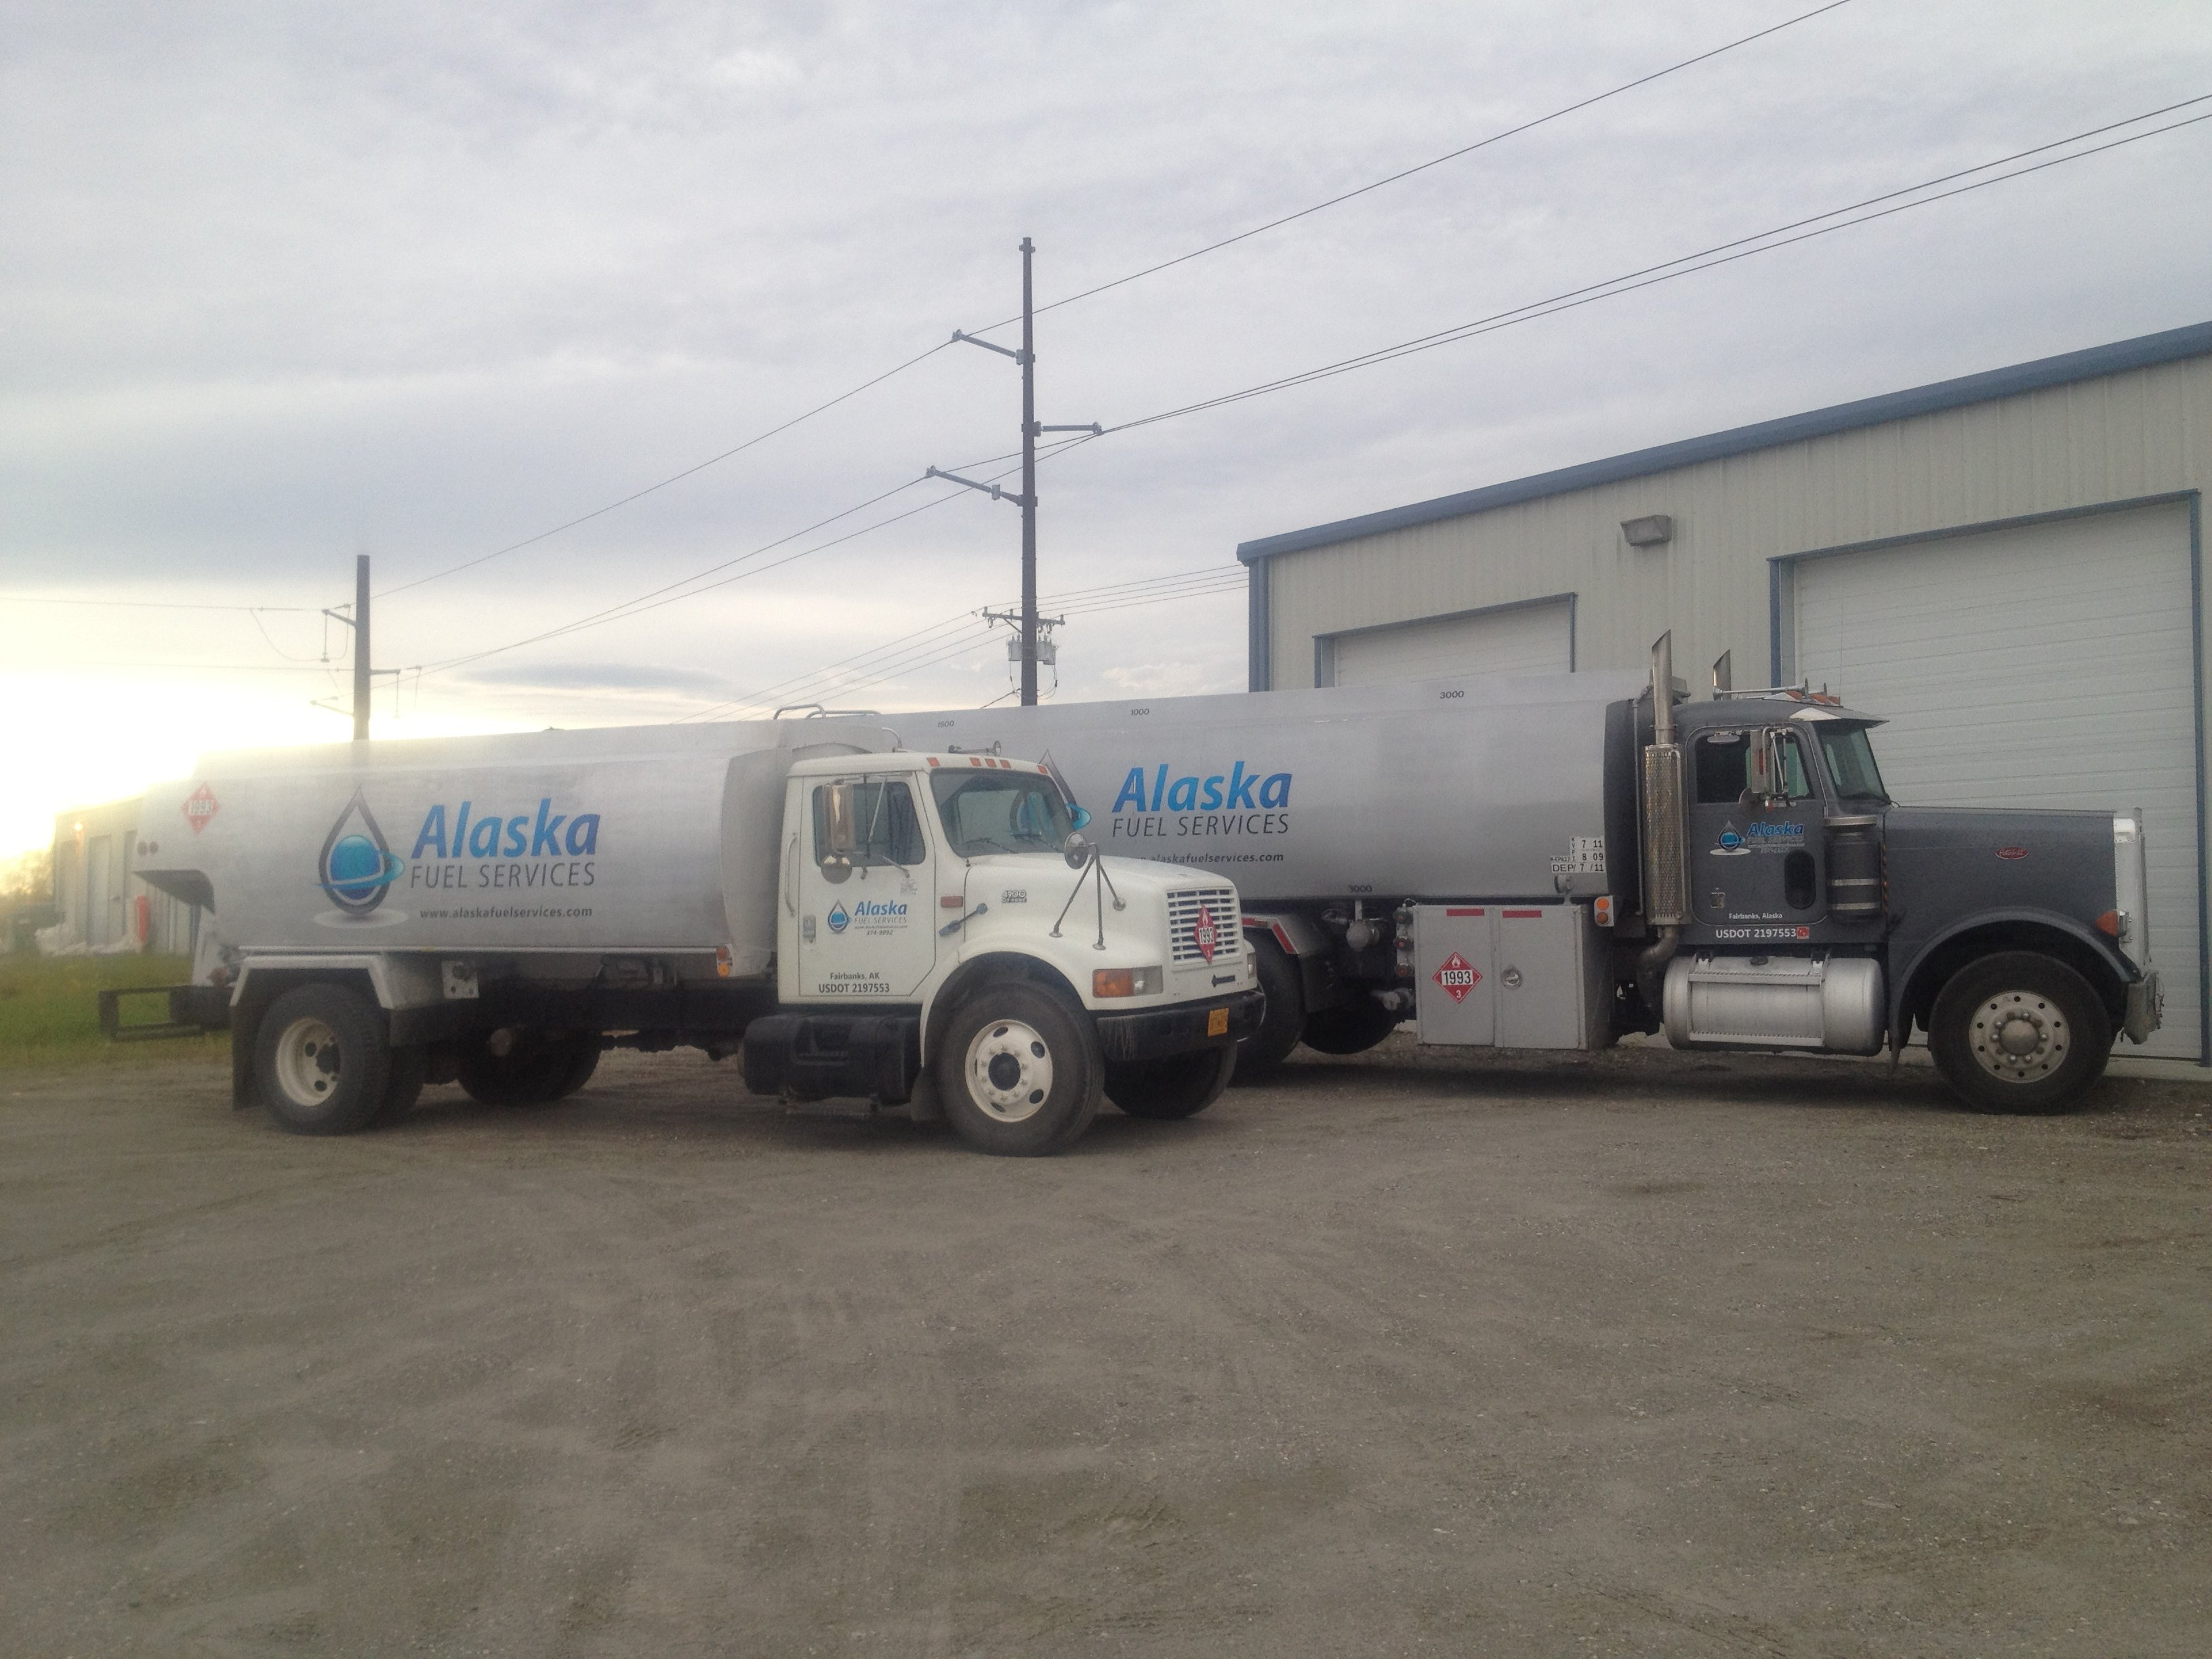 Some fuel trucks in front of our building in Fairbanks, AK